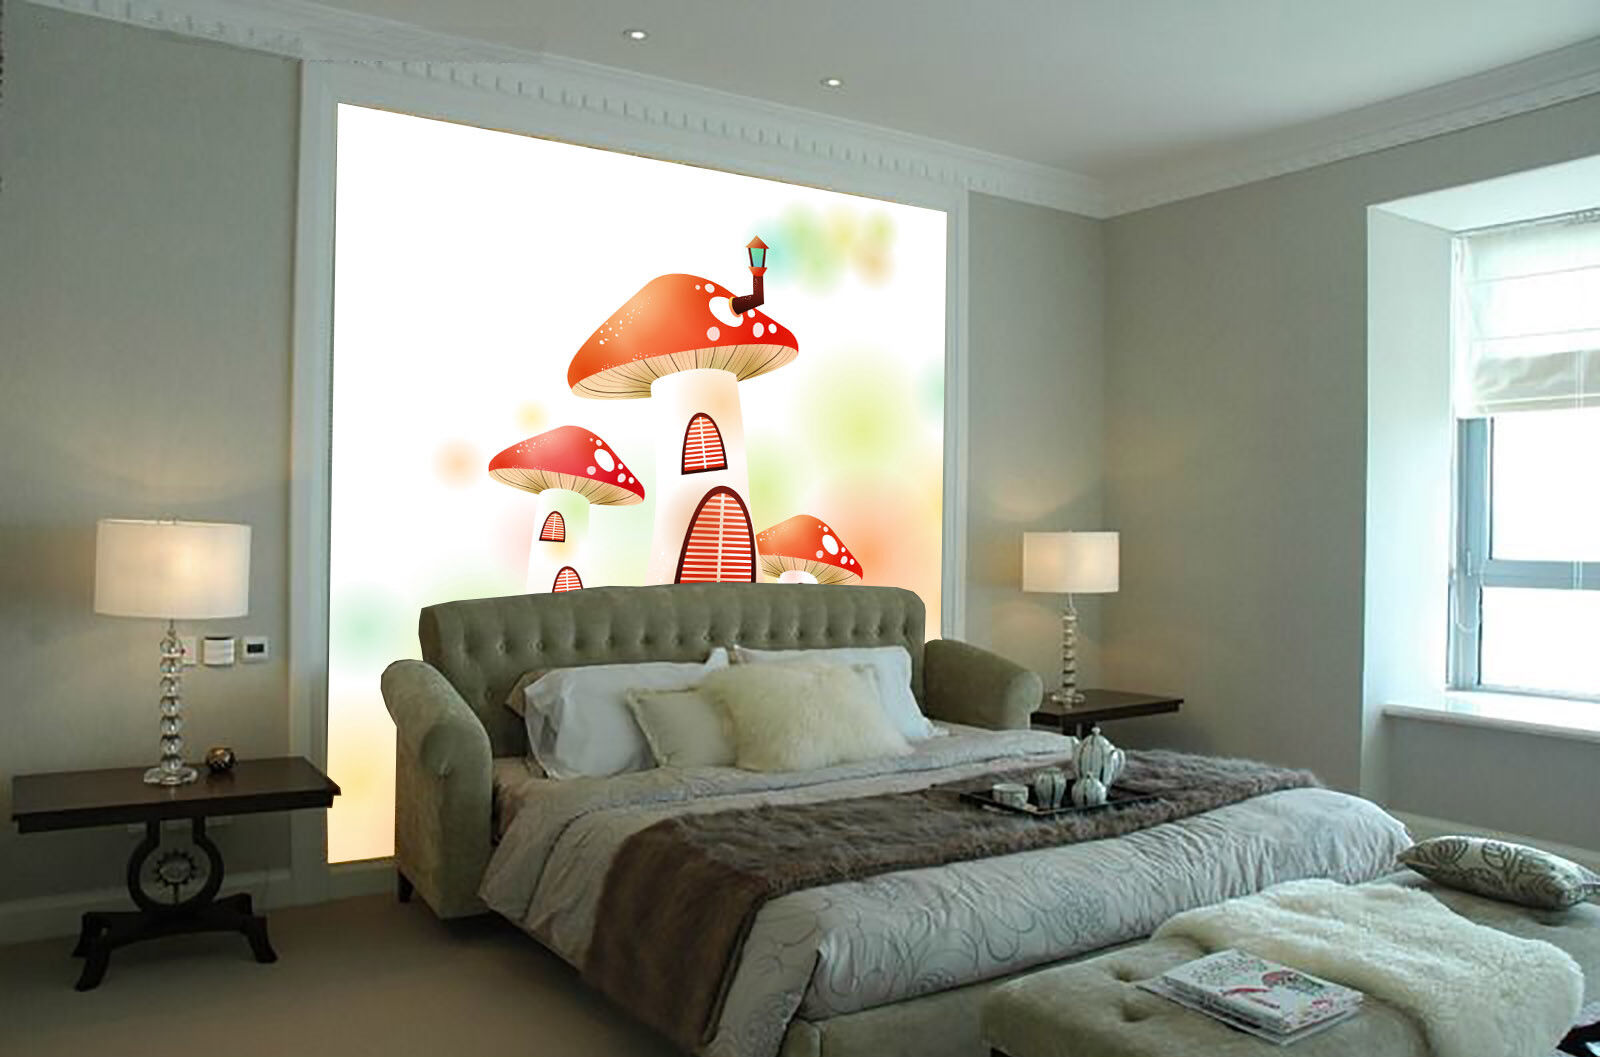 3D Mushroom 4222 Wallpaper Murals Wall Print Wallpaper Mural AJ WALL UK Lemon